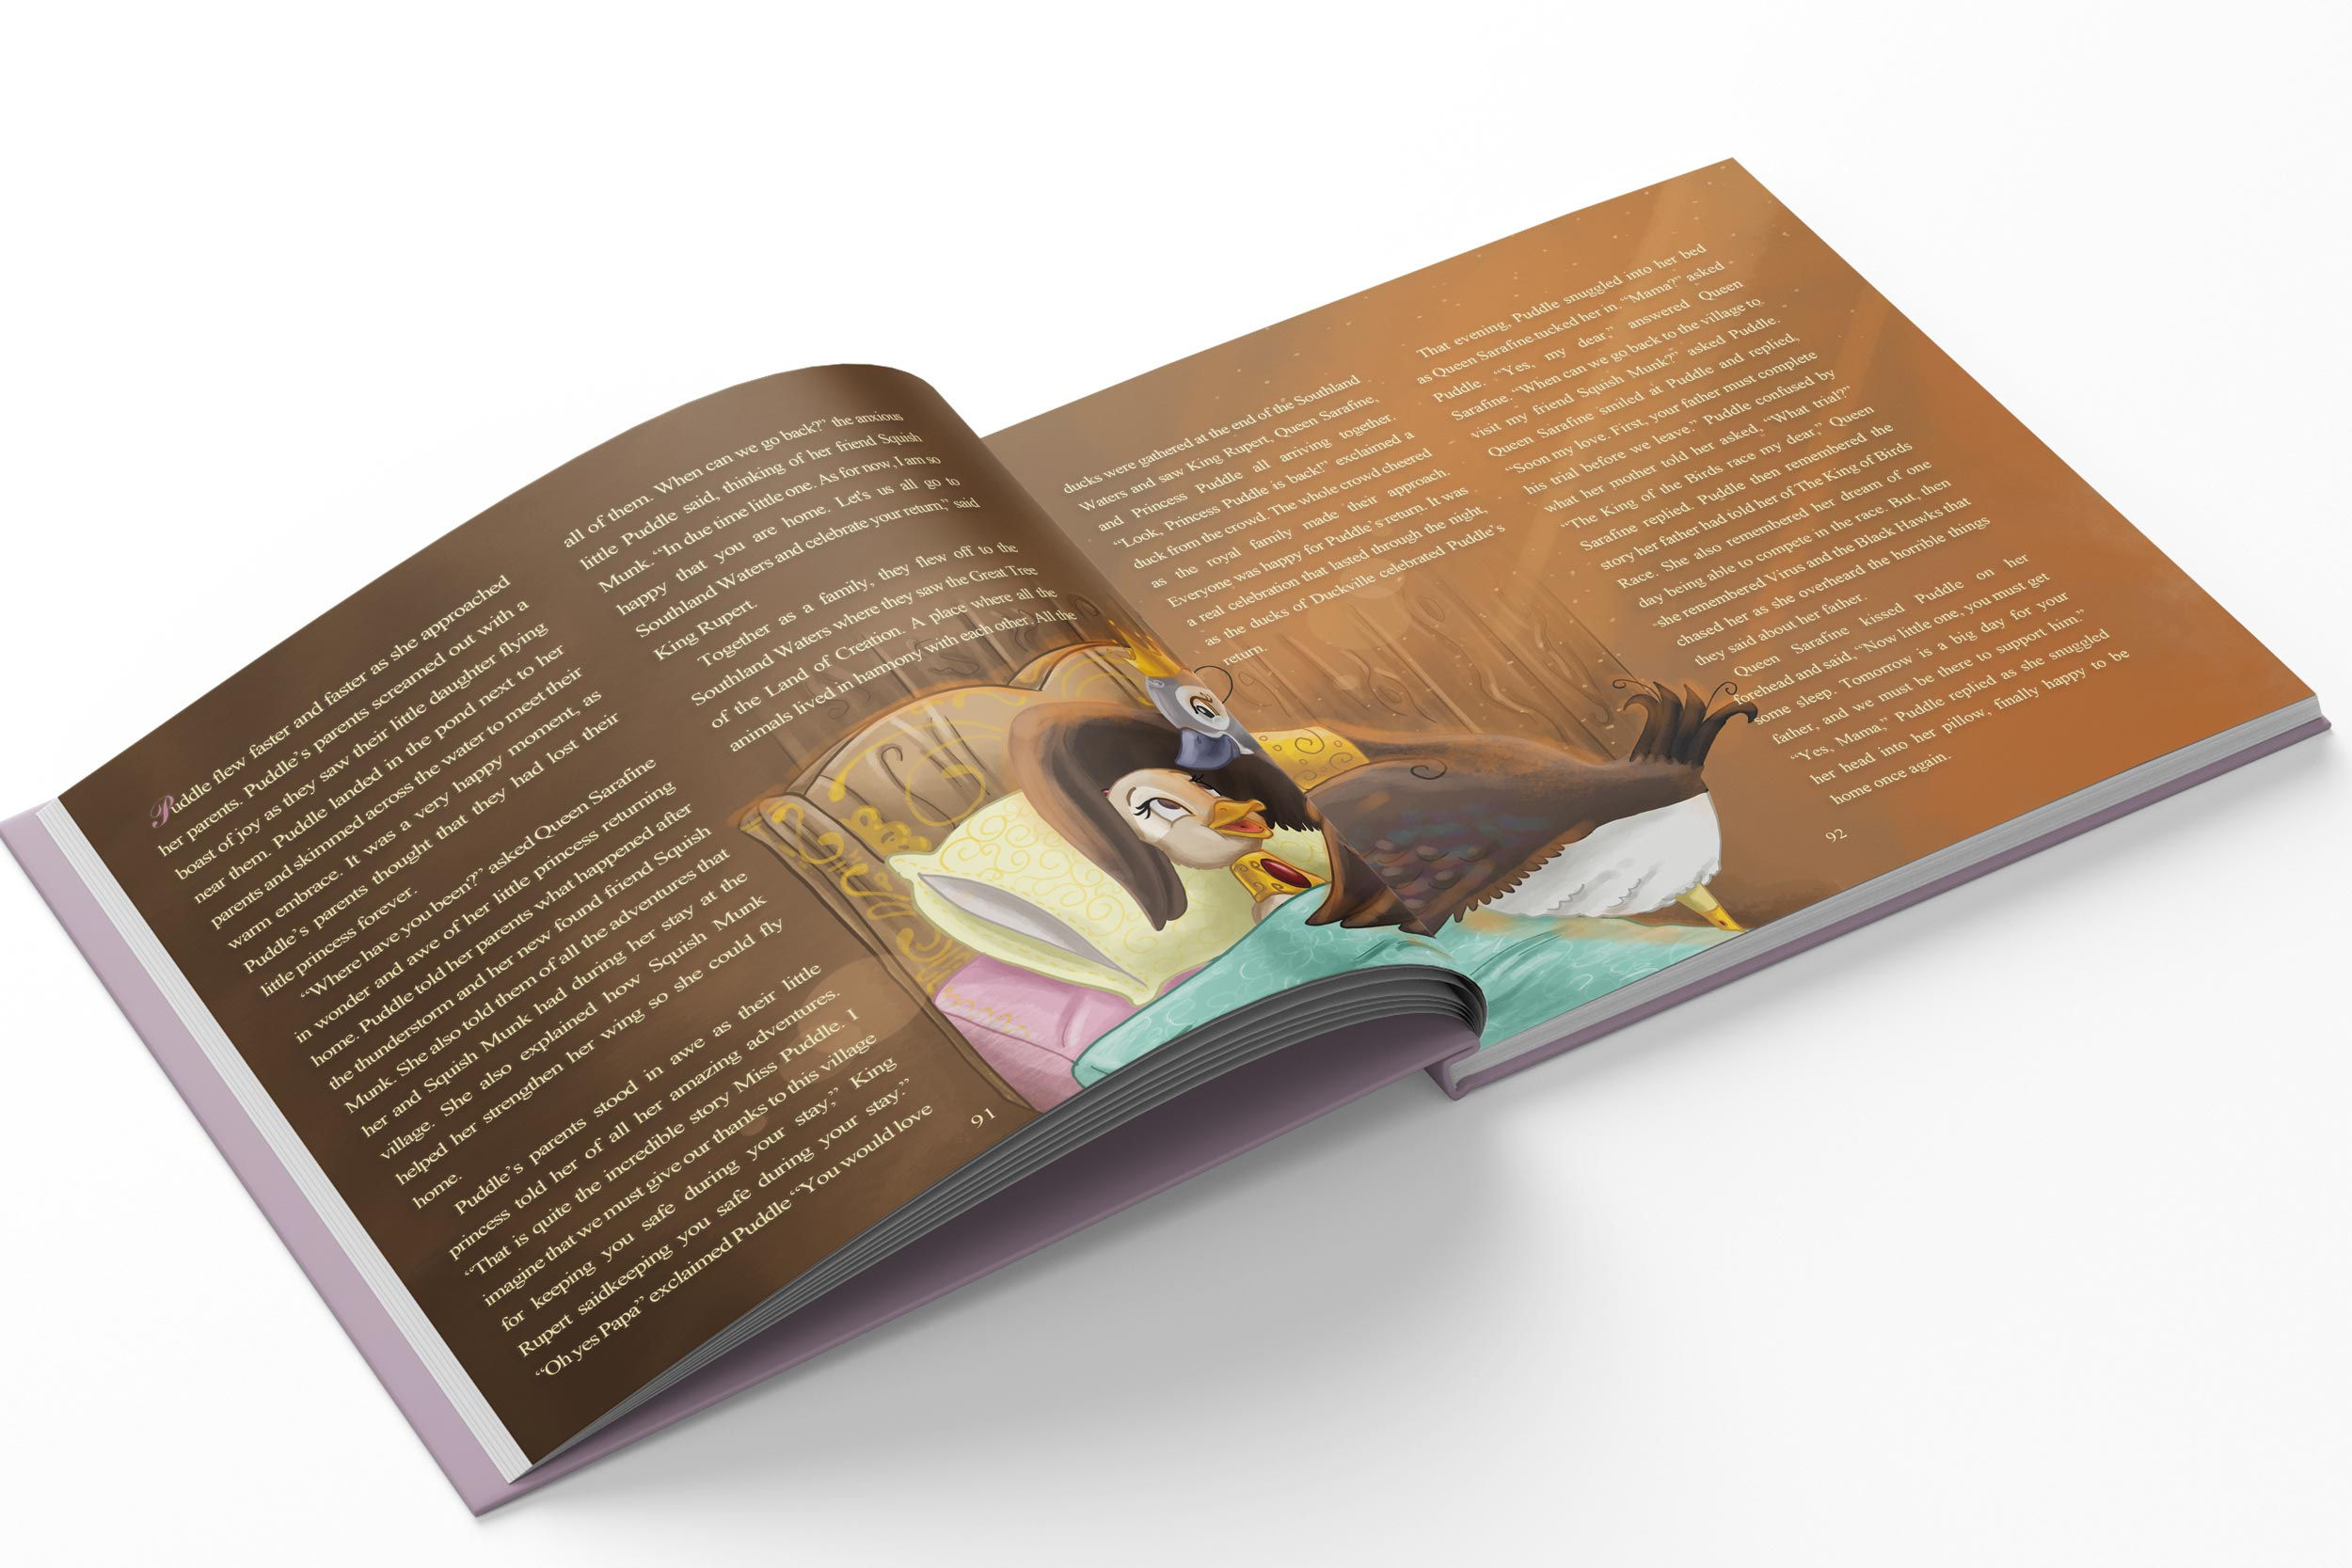 journey-of-puddle-christian-illustrated-children-books-book-3-look-inside-page-1.jpg